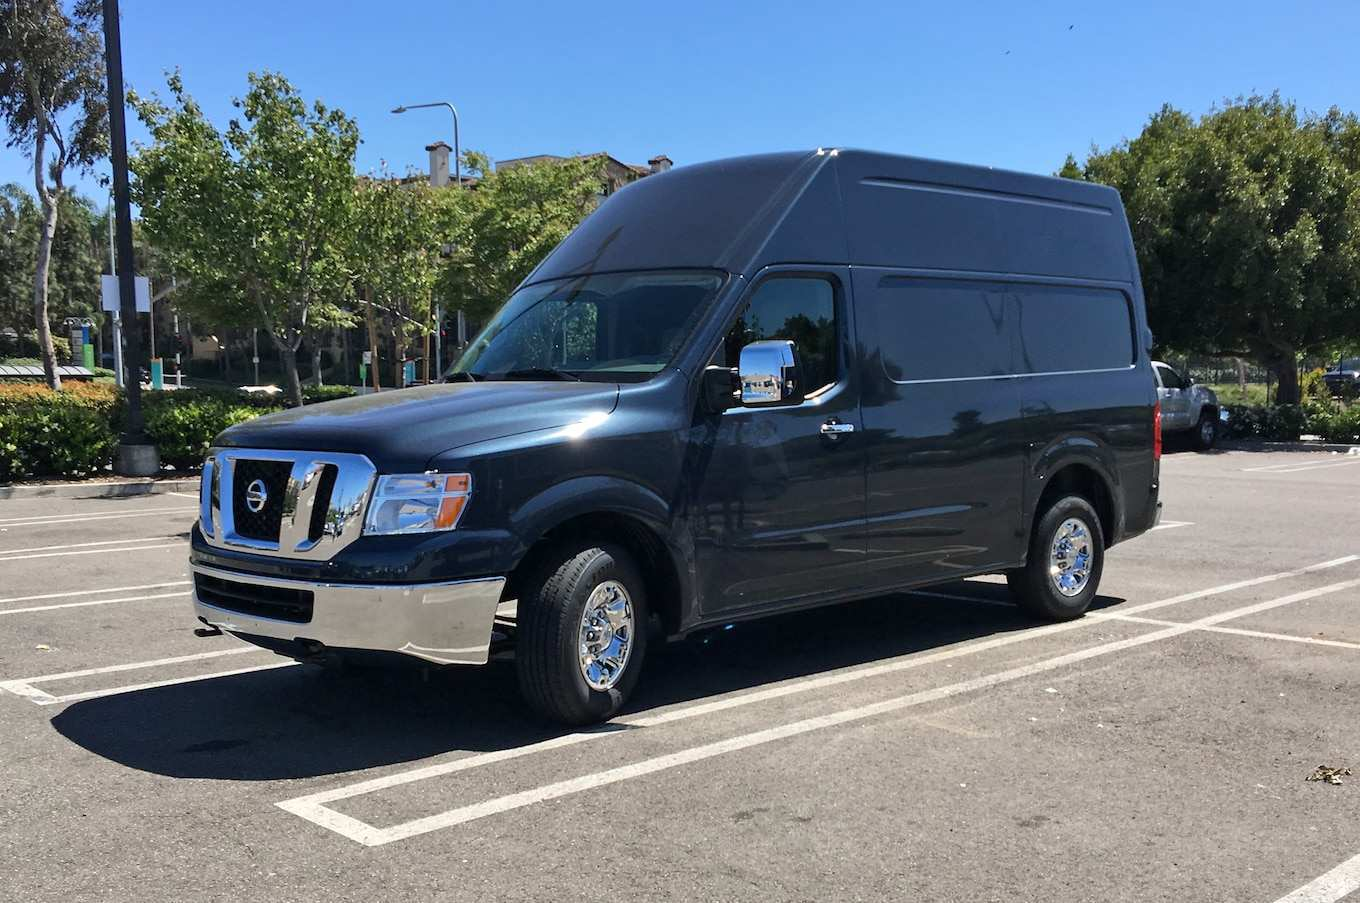 26 New 2020 Nissan Nv First Drive for 2020 Nissan Nv